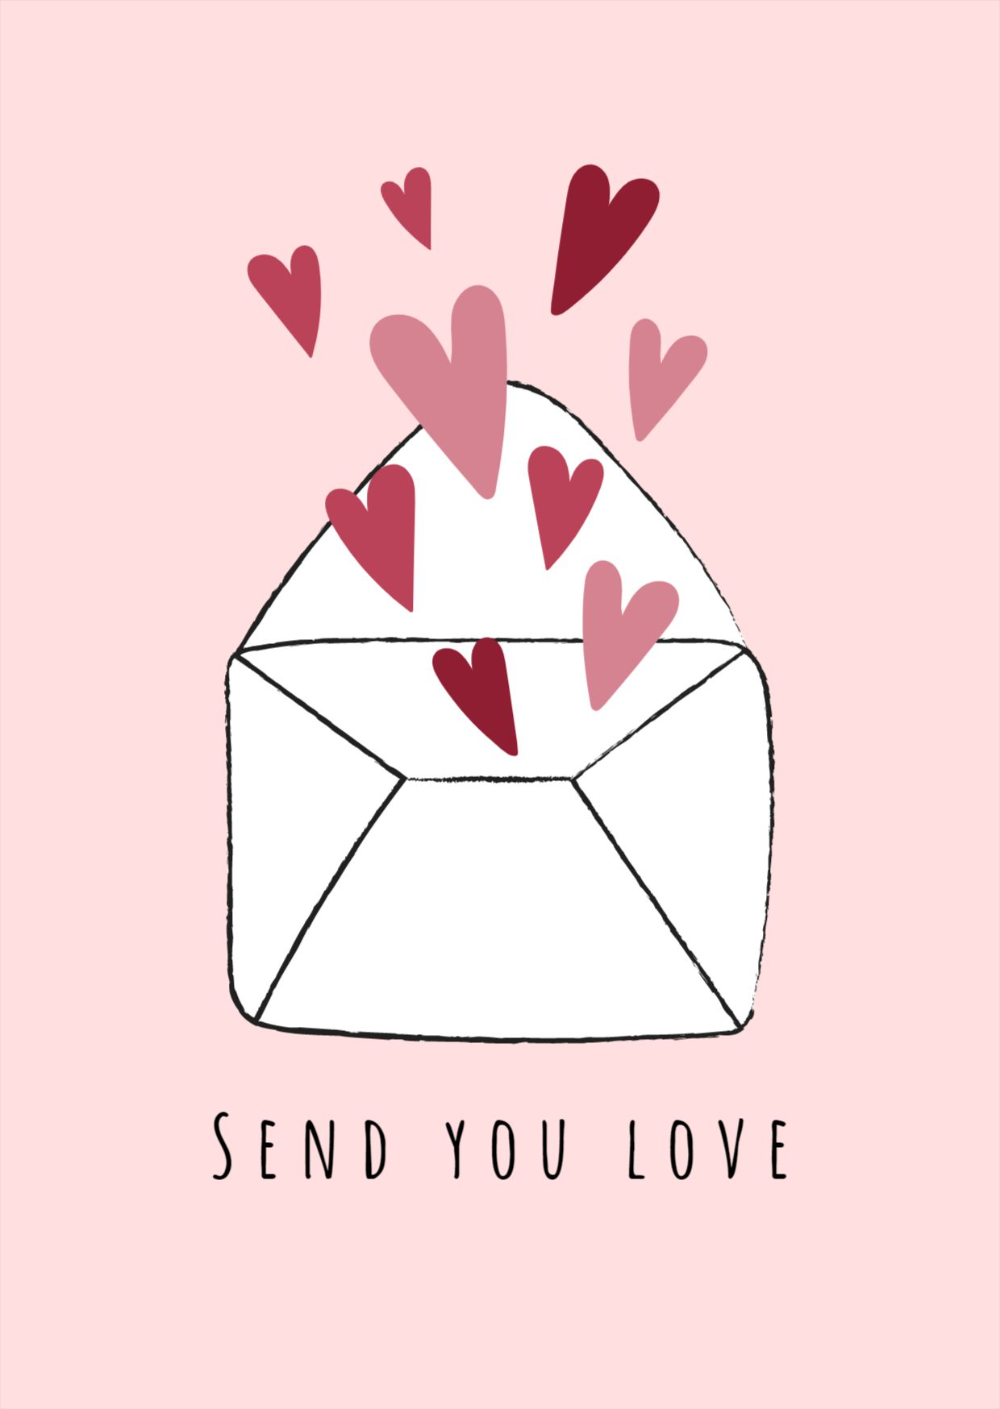 10 Amazingly Brilliant Valentine Wishes For 2021 With Pictures Mediamodifier In 2021 Greeting Card Template Valentine S Day Greeting Cards Card Templates